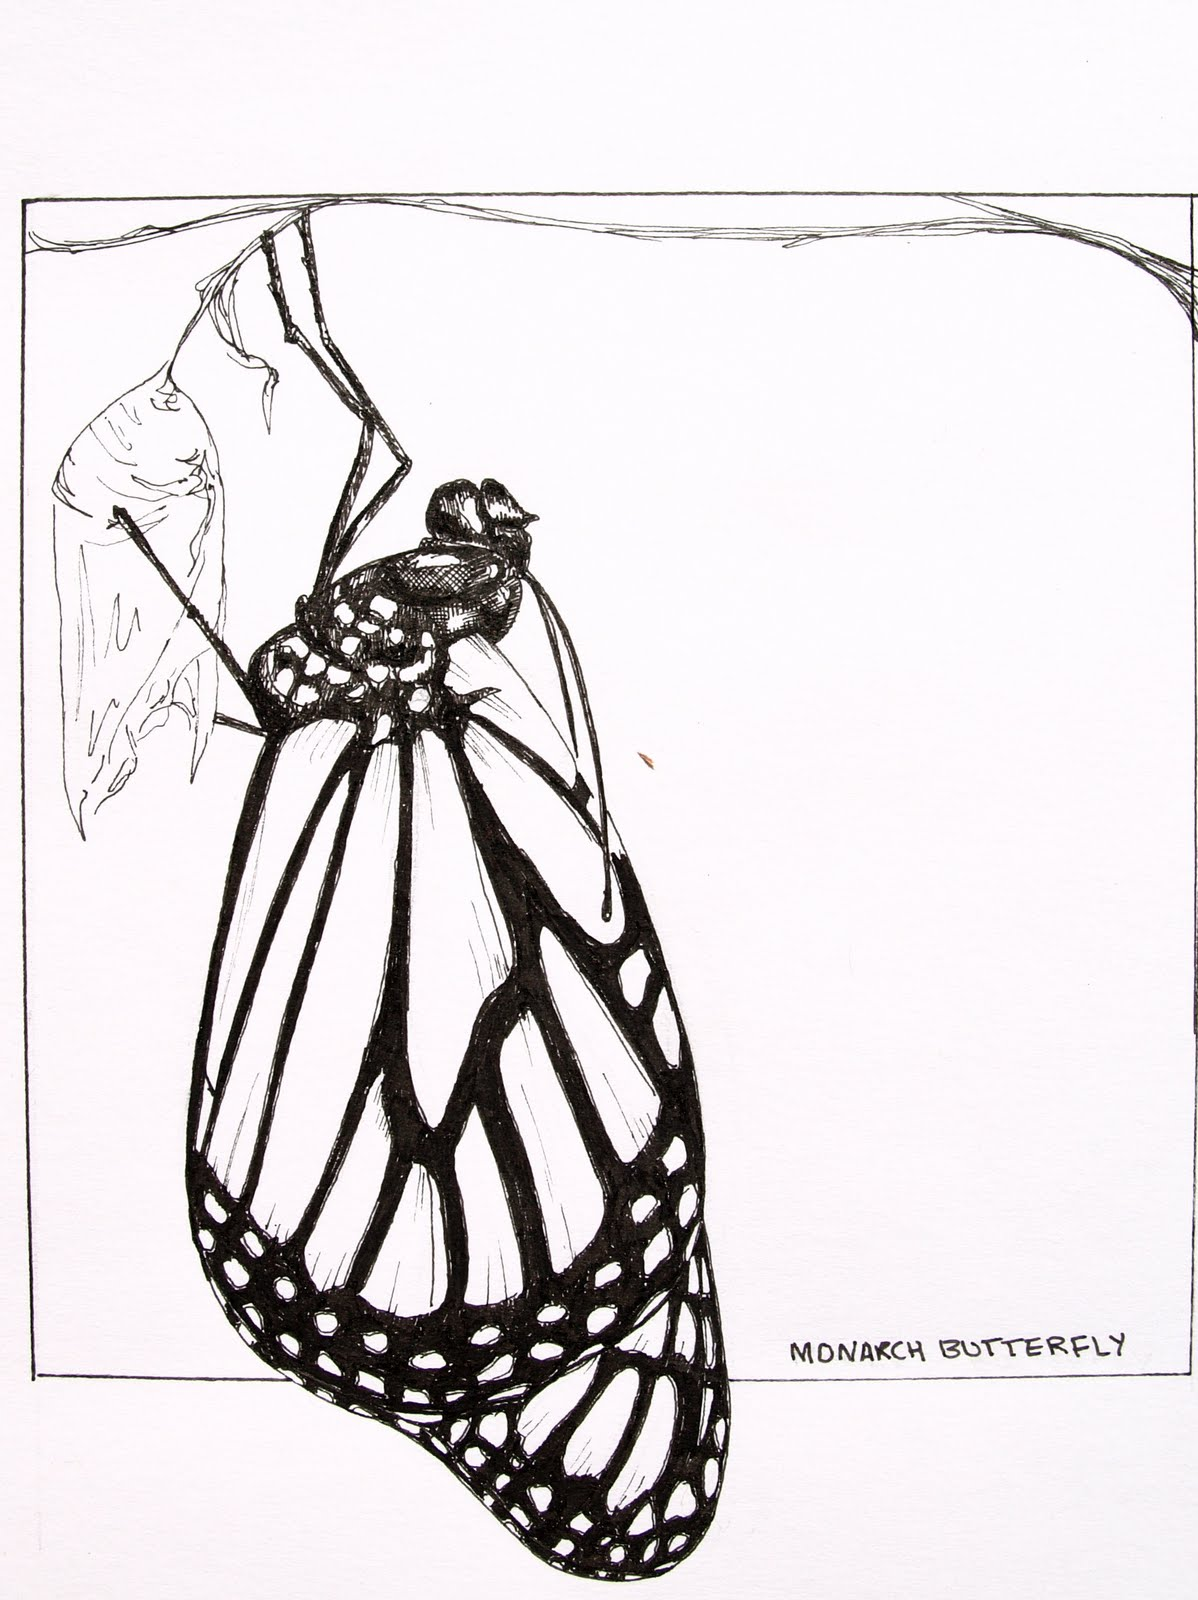 Butterfly Cocoon Drawing Hmm guess I should draw